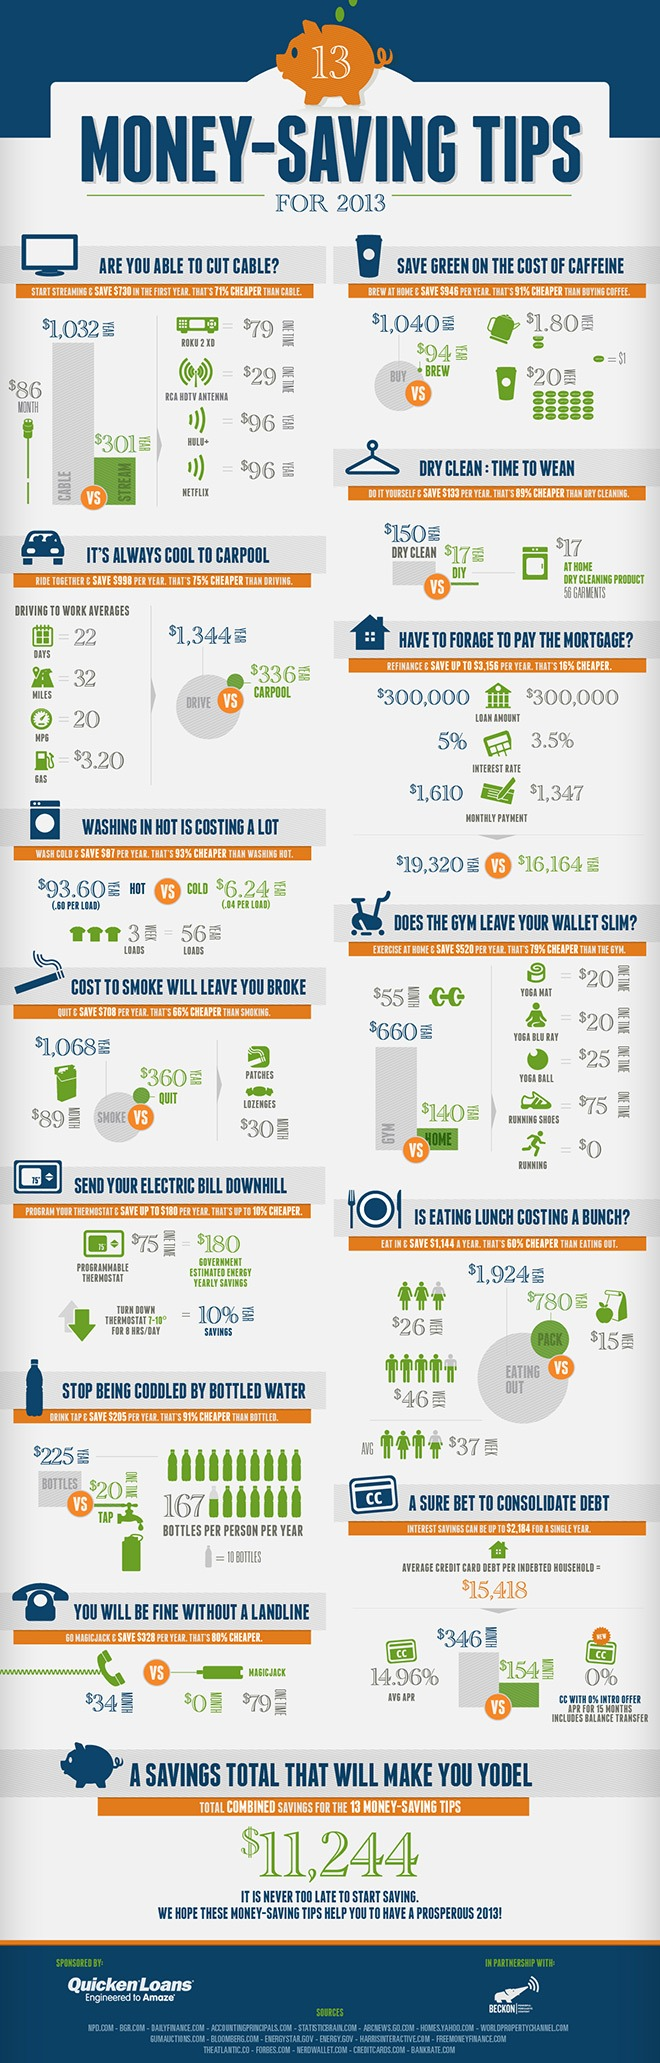 13 Ways to Save in 2013 Infographic | Quicken Loans